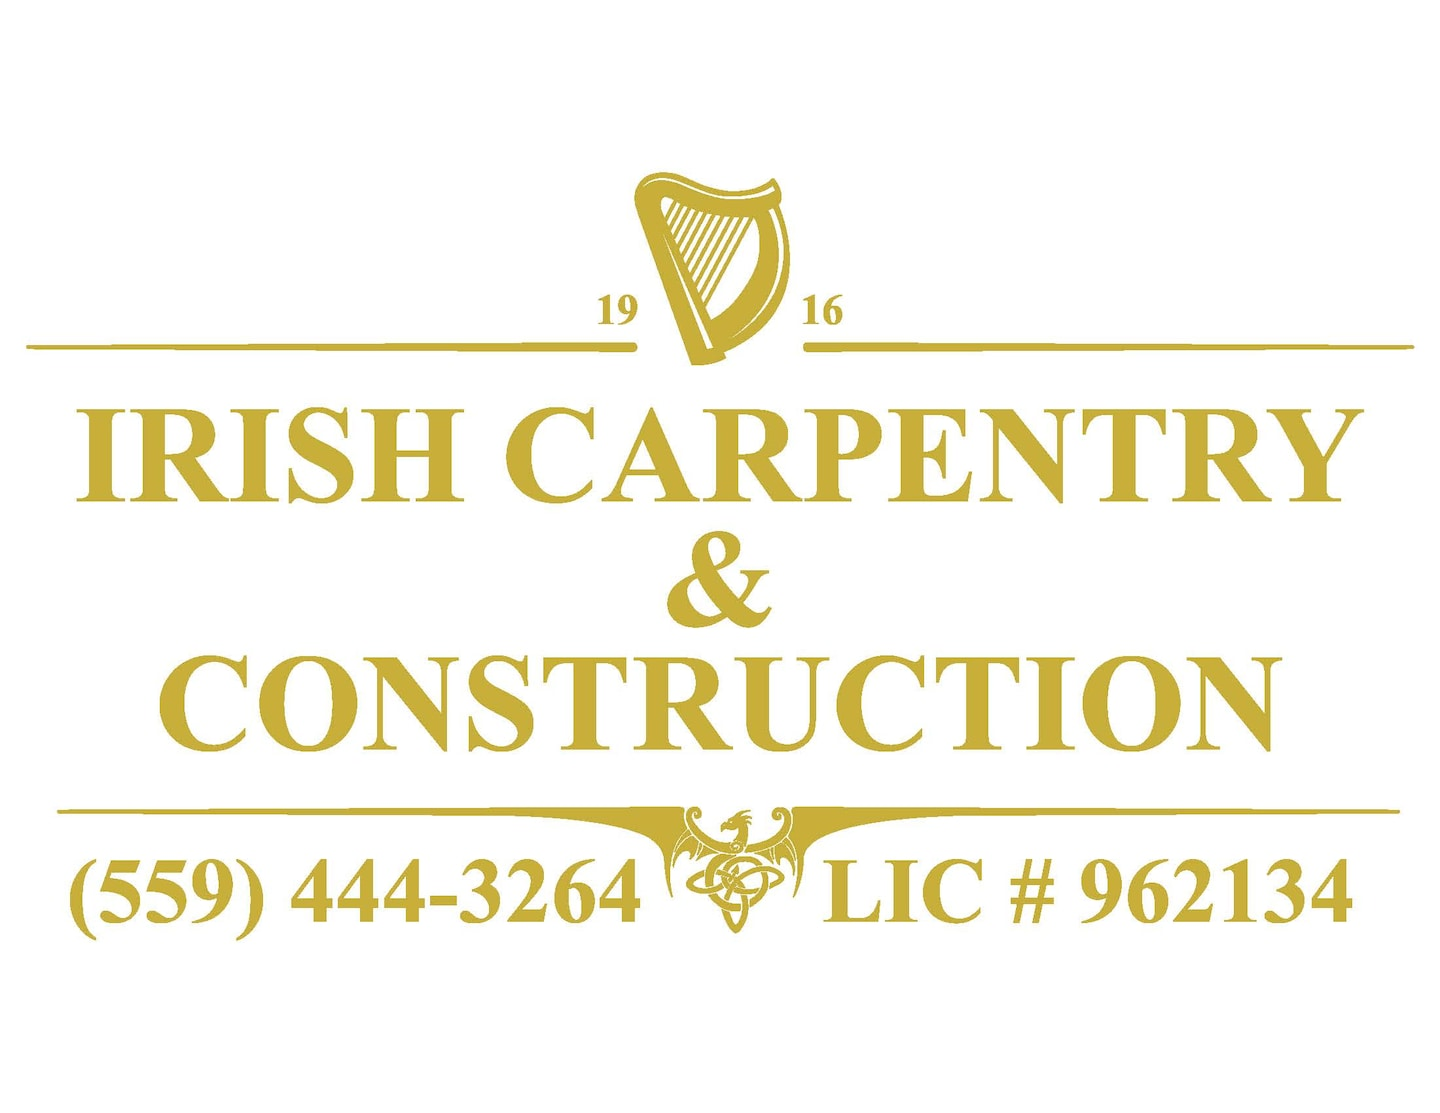 Irish Carpentry & Construction